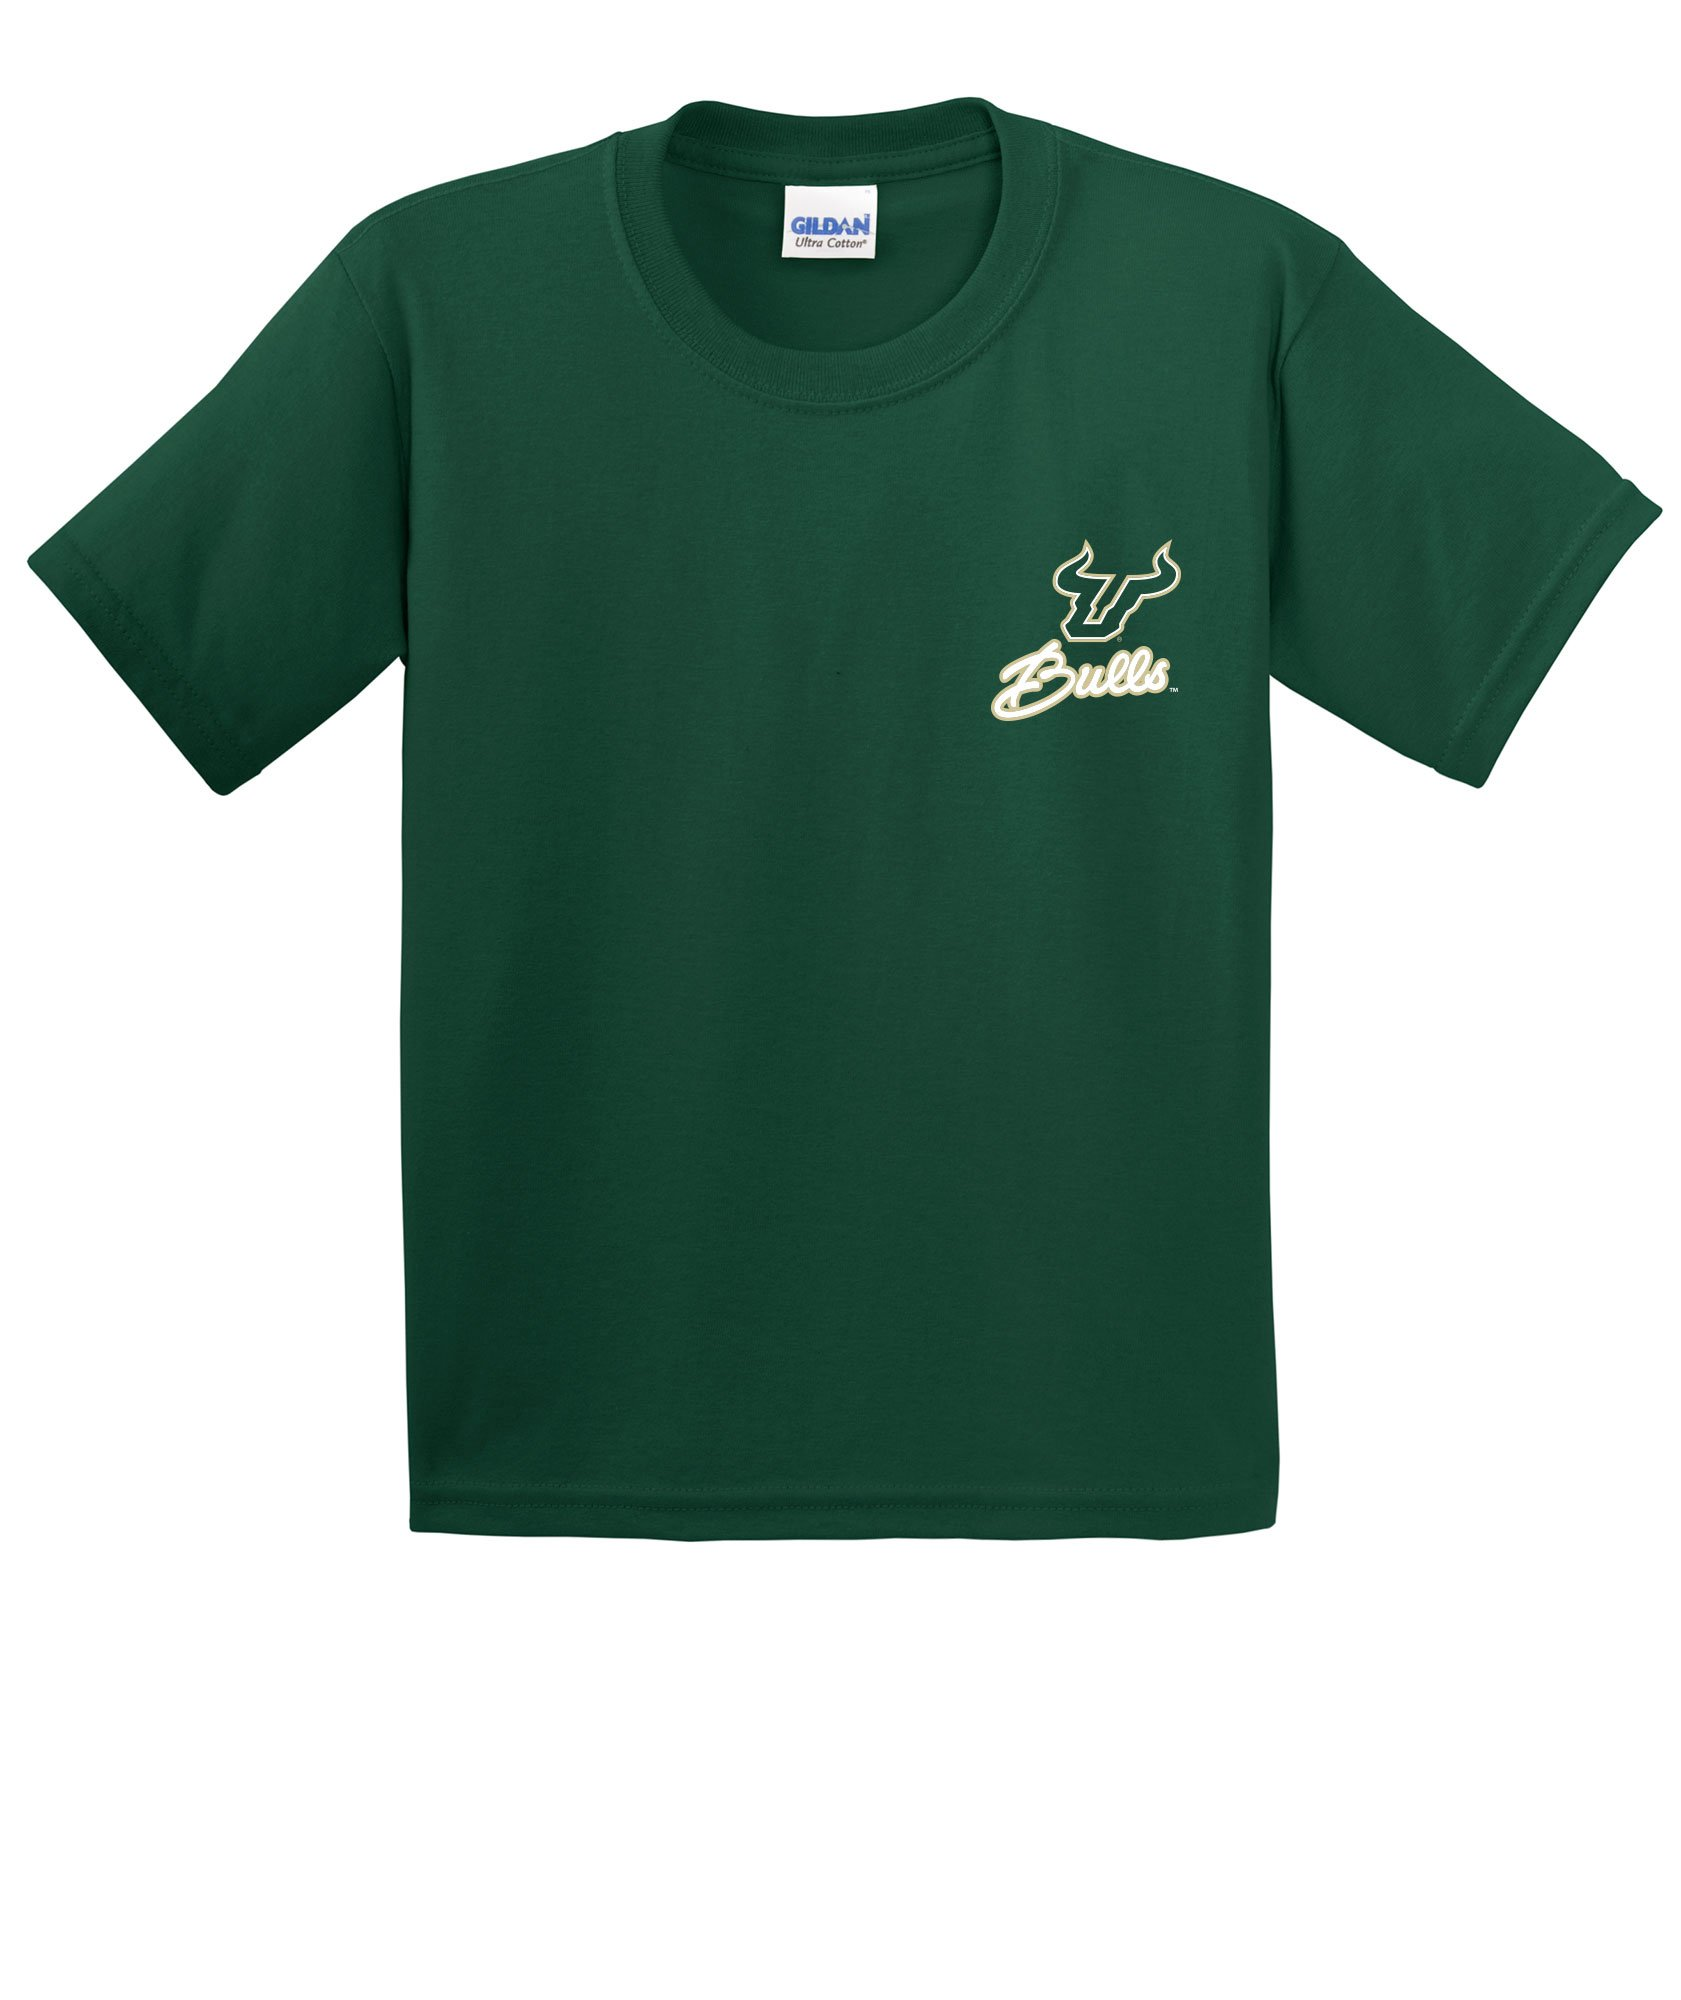 Image One NCAA Cheer Loud Youth Short Sleeve Cotton T-Shirt, Youth Medium,ForestGreen